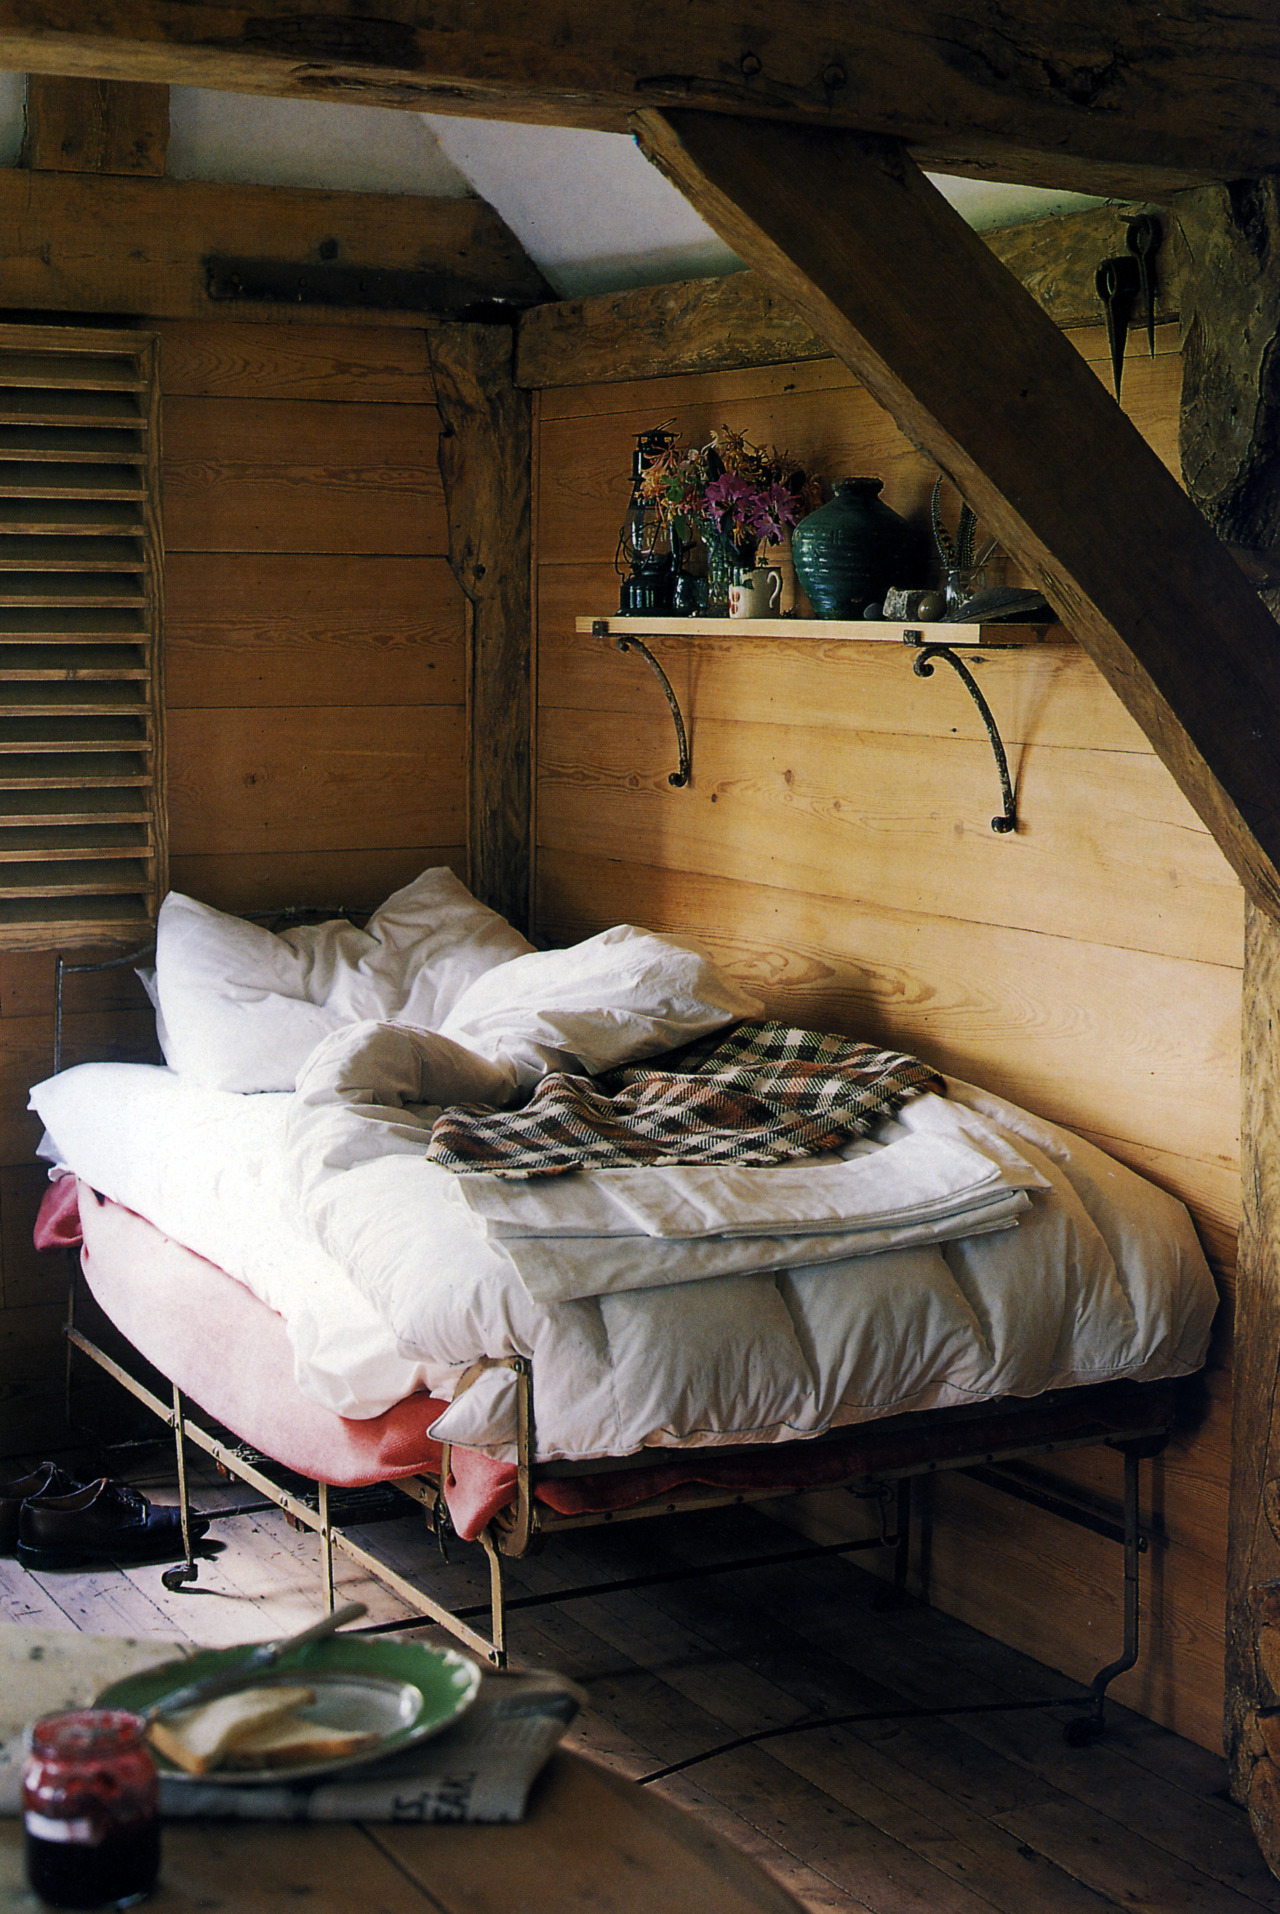 c0ntigo:  Future cabin right here  Adorable cozy bed.